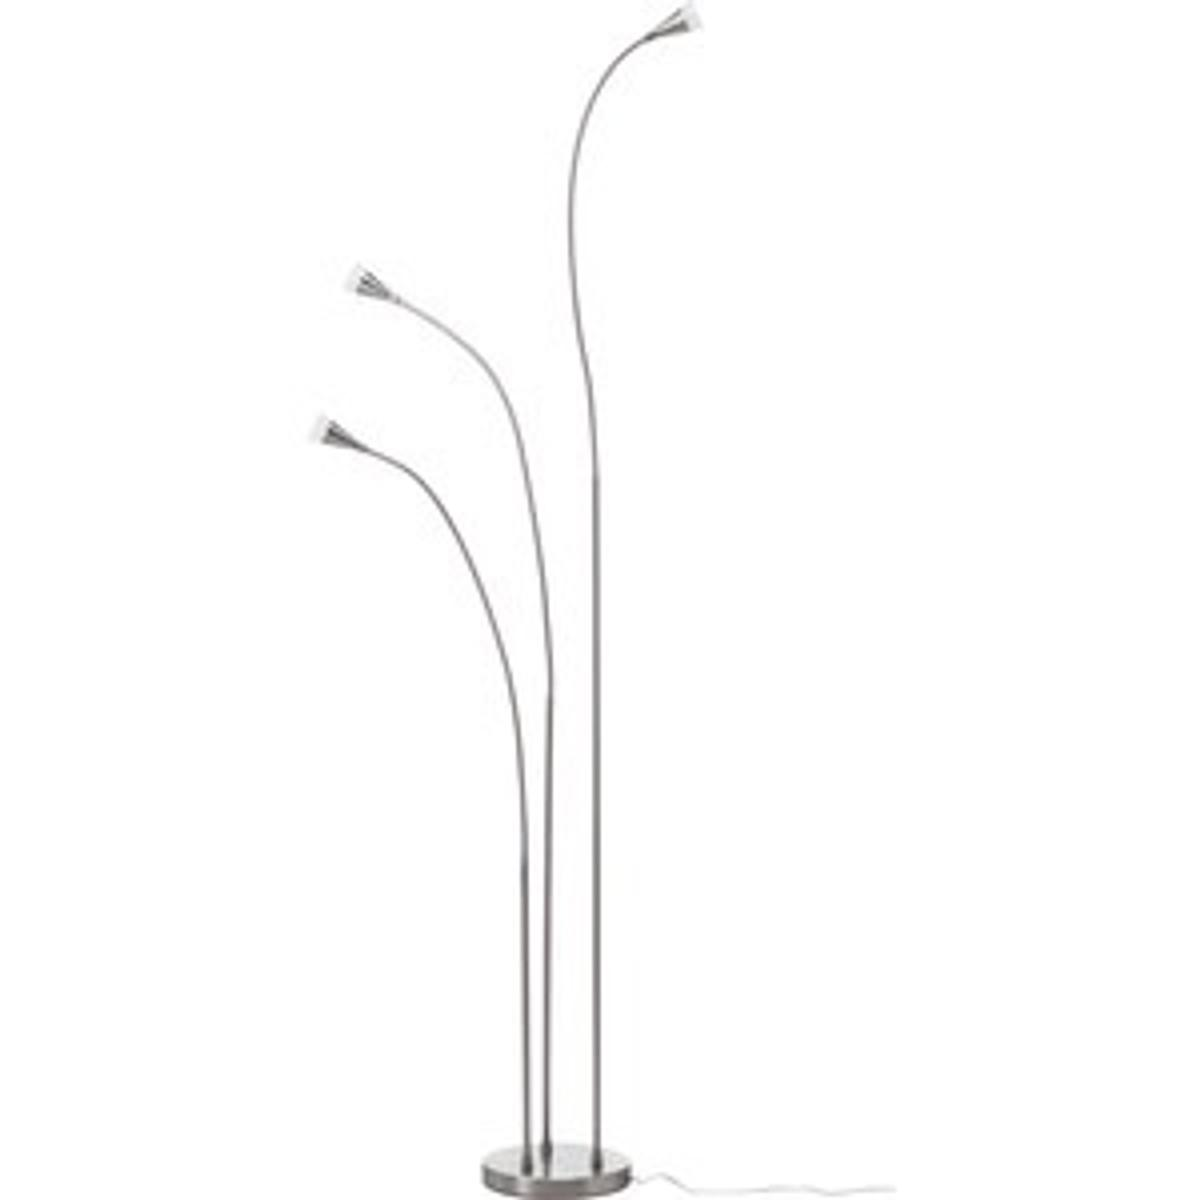 Ikea Tived Led Standleuchte Stehlampe In 13088 Berlin For 60 00